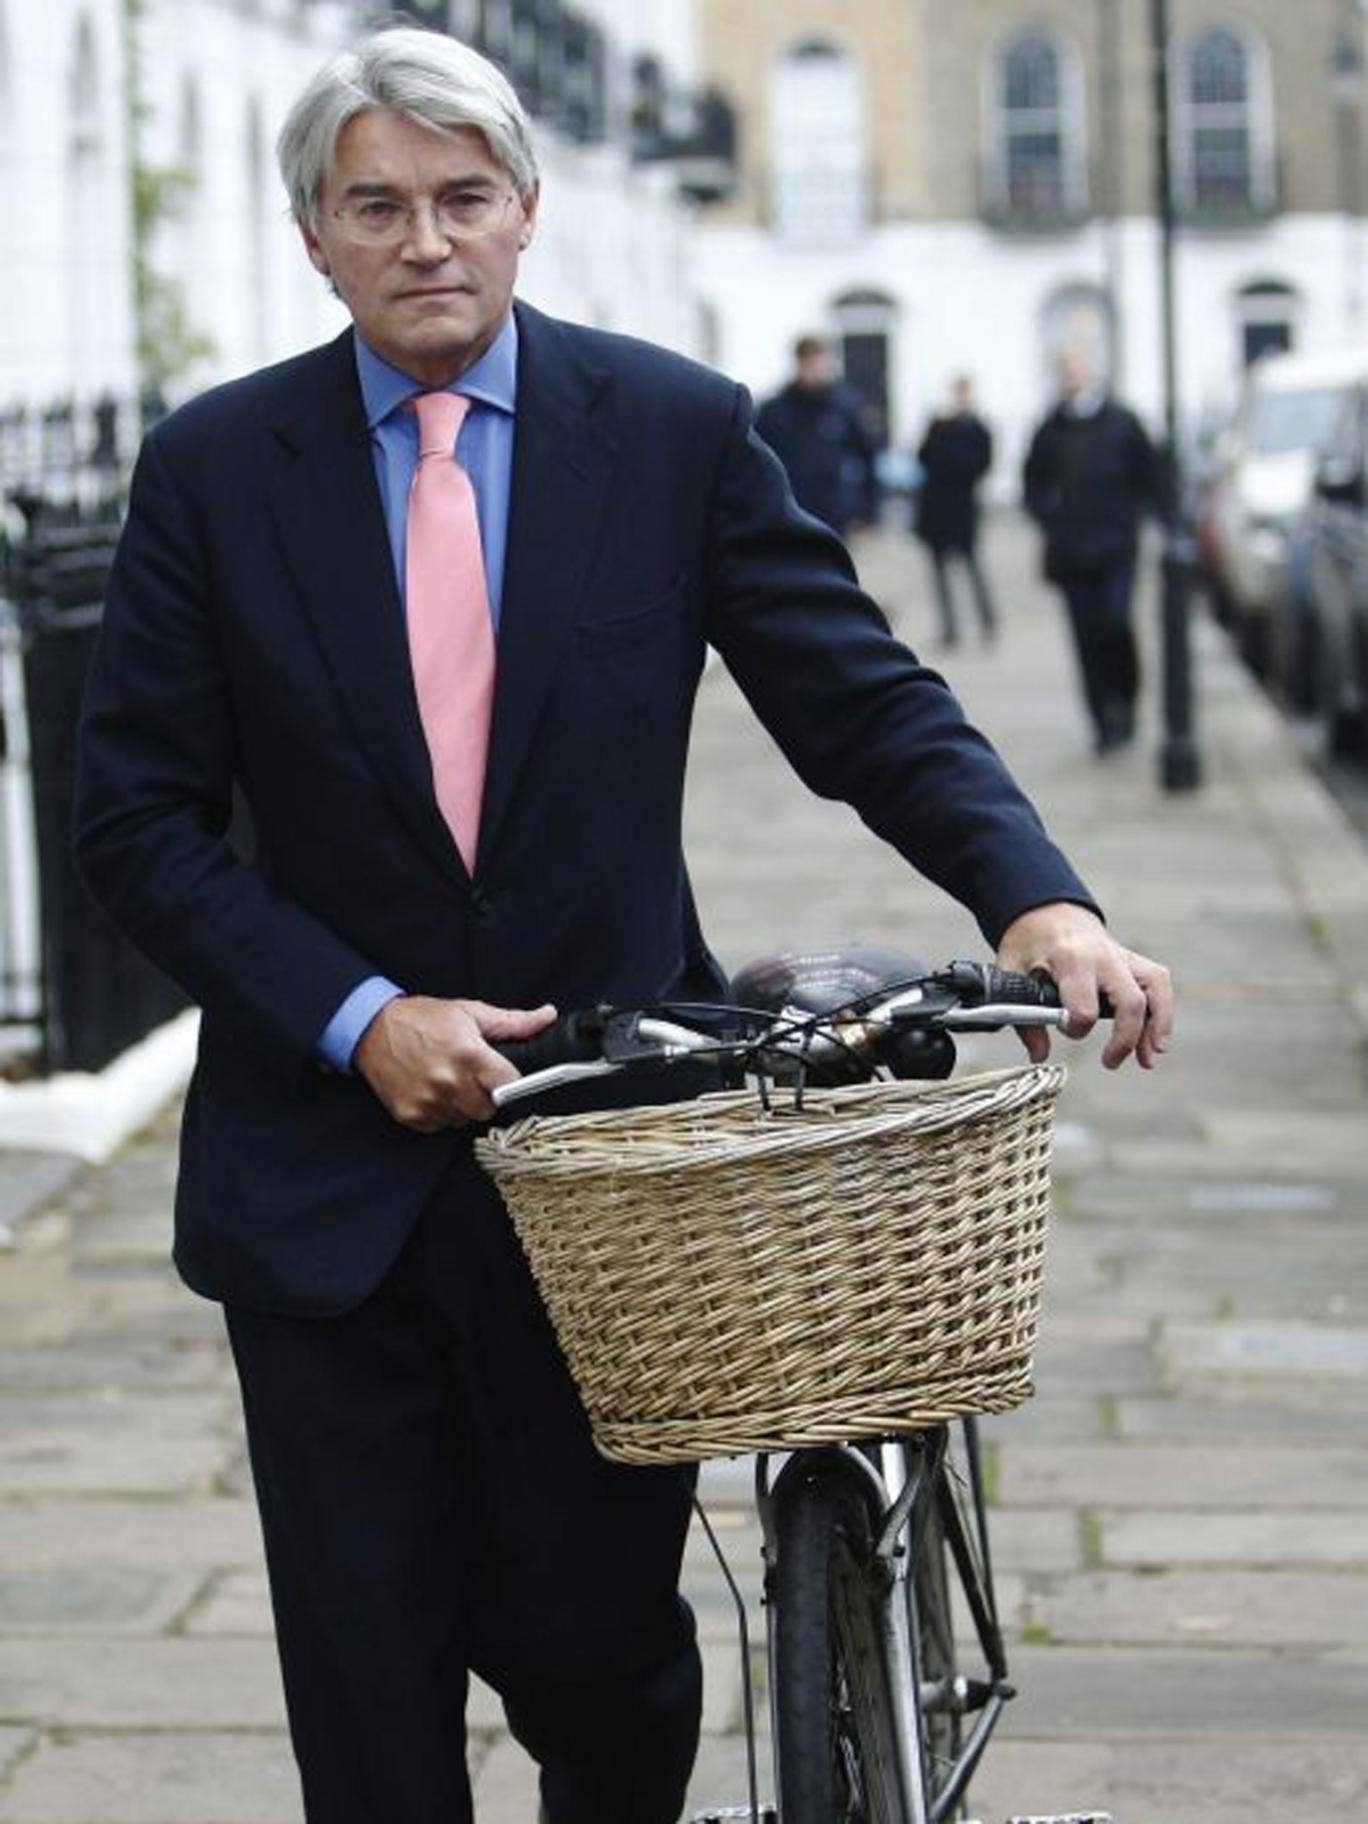 Andrew Mitchell MP during 'Plebgate'